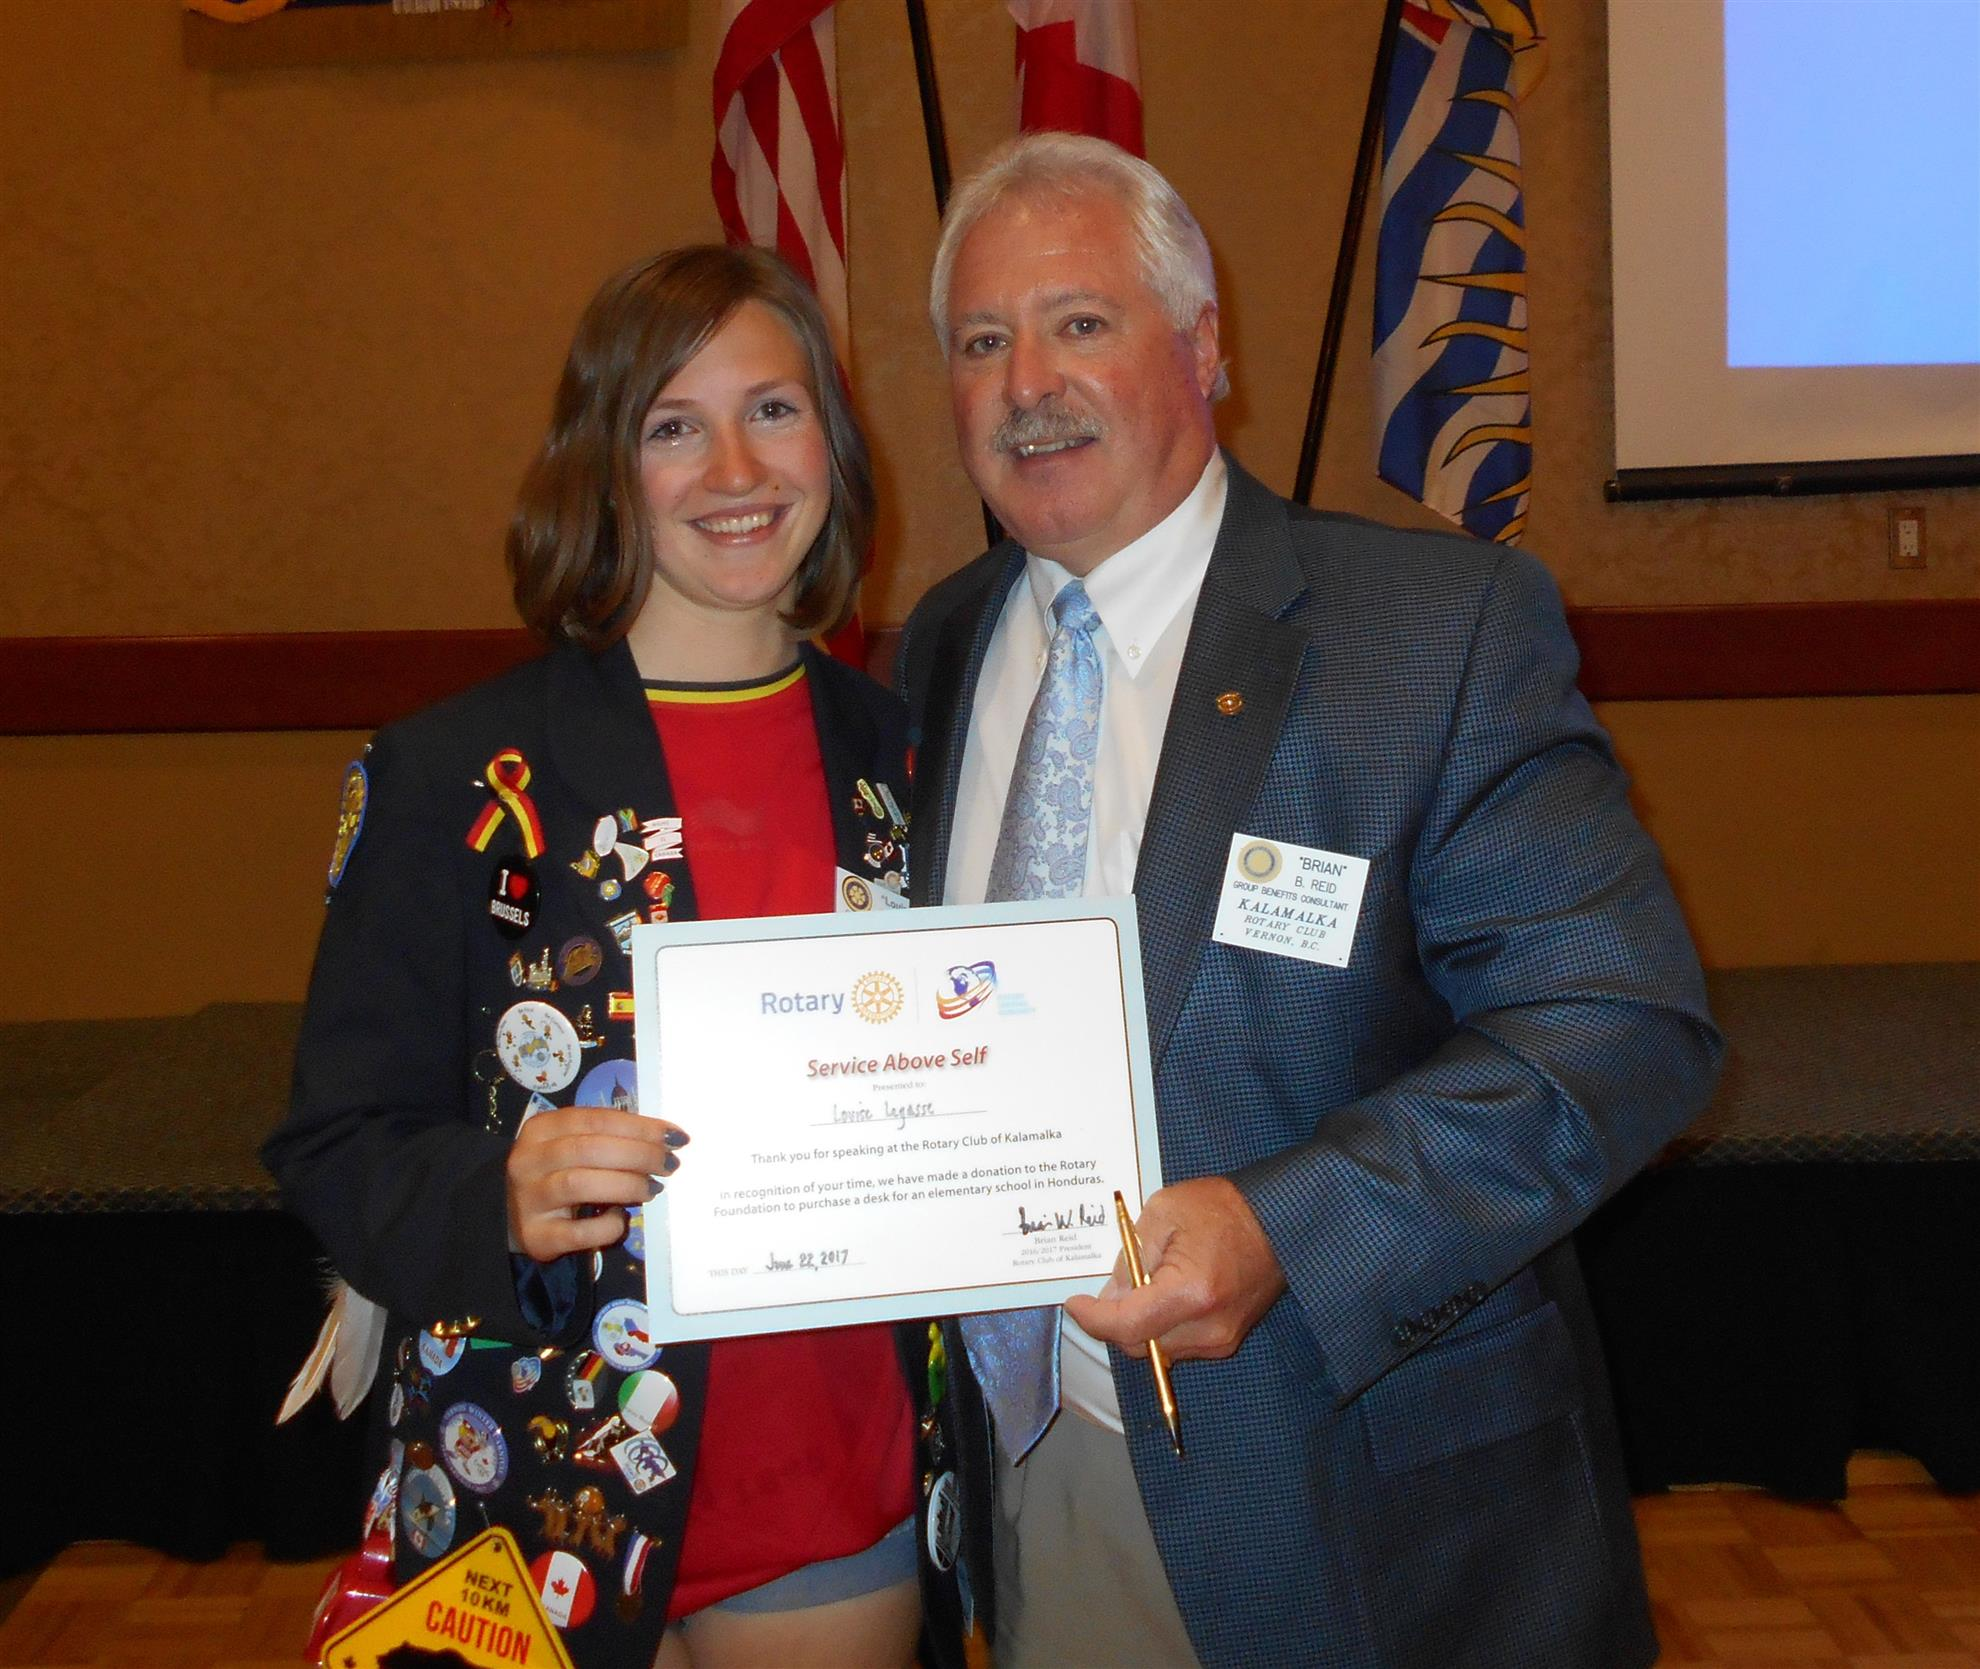 Stories | Rotary Club of Kalamalka (Vernon)